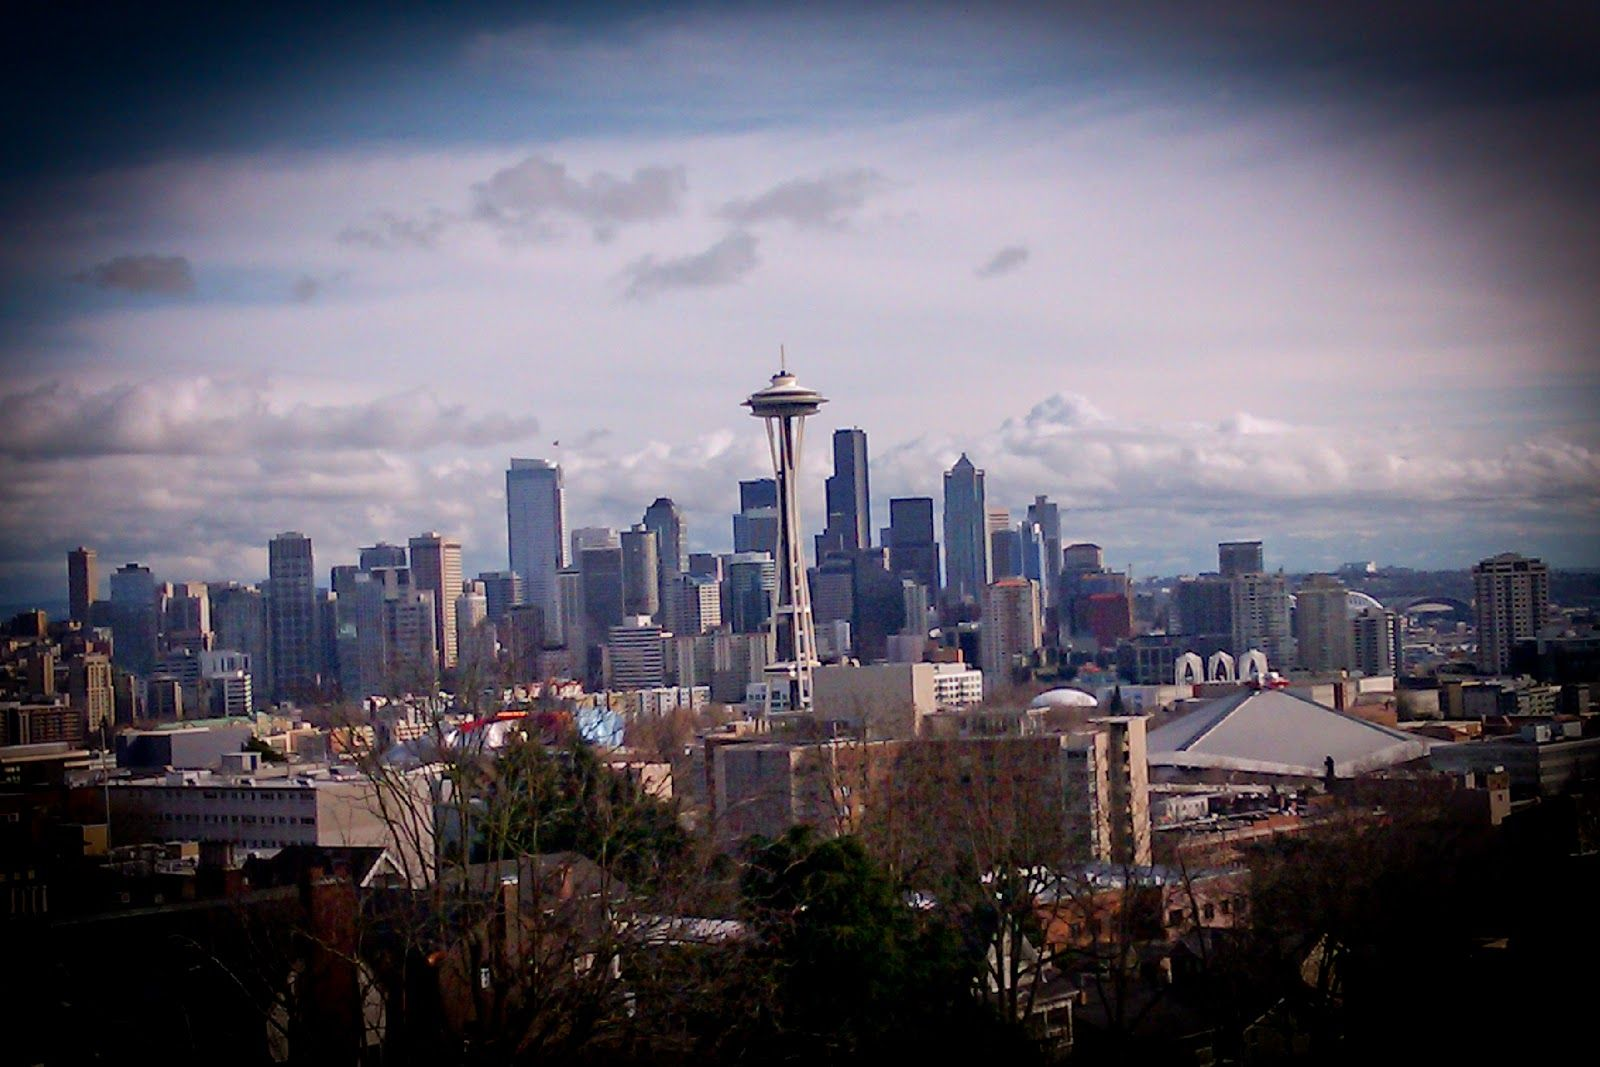 Take your breath away - Kerry Park.